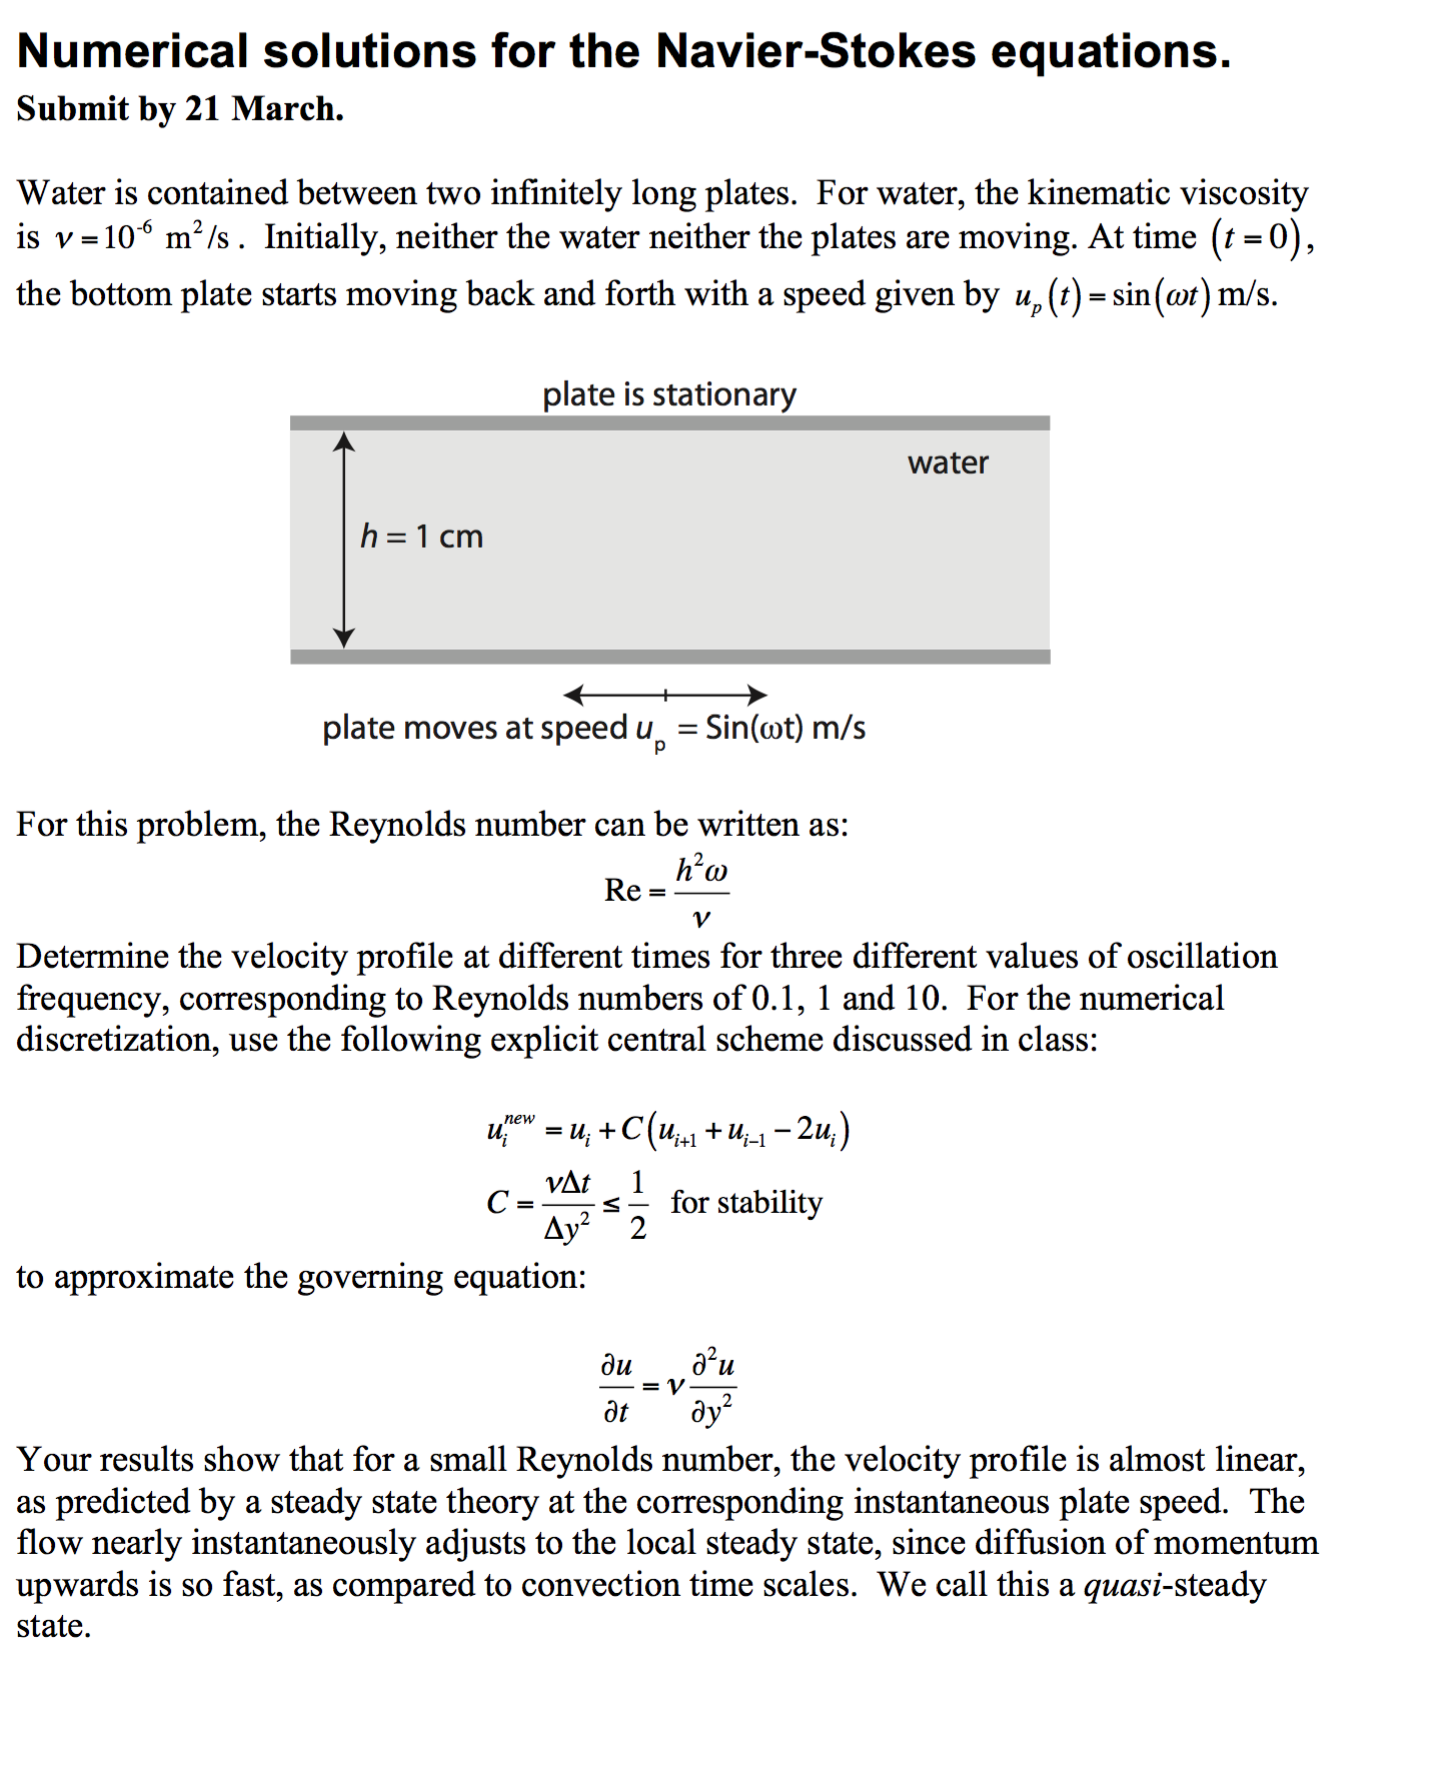 Numerical Solutions For The Navier-Stokes Equation